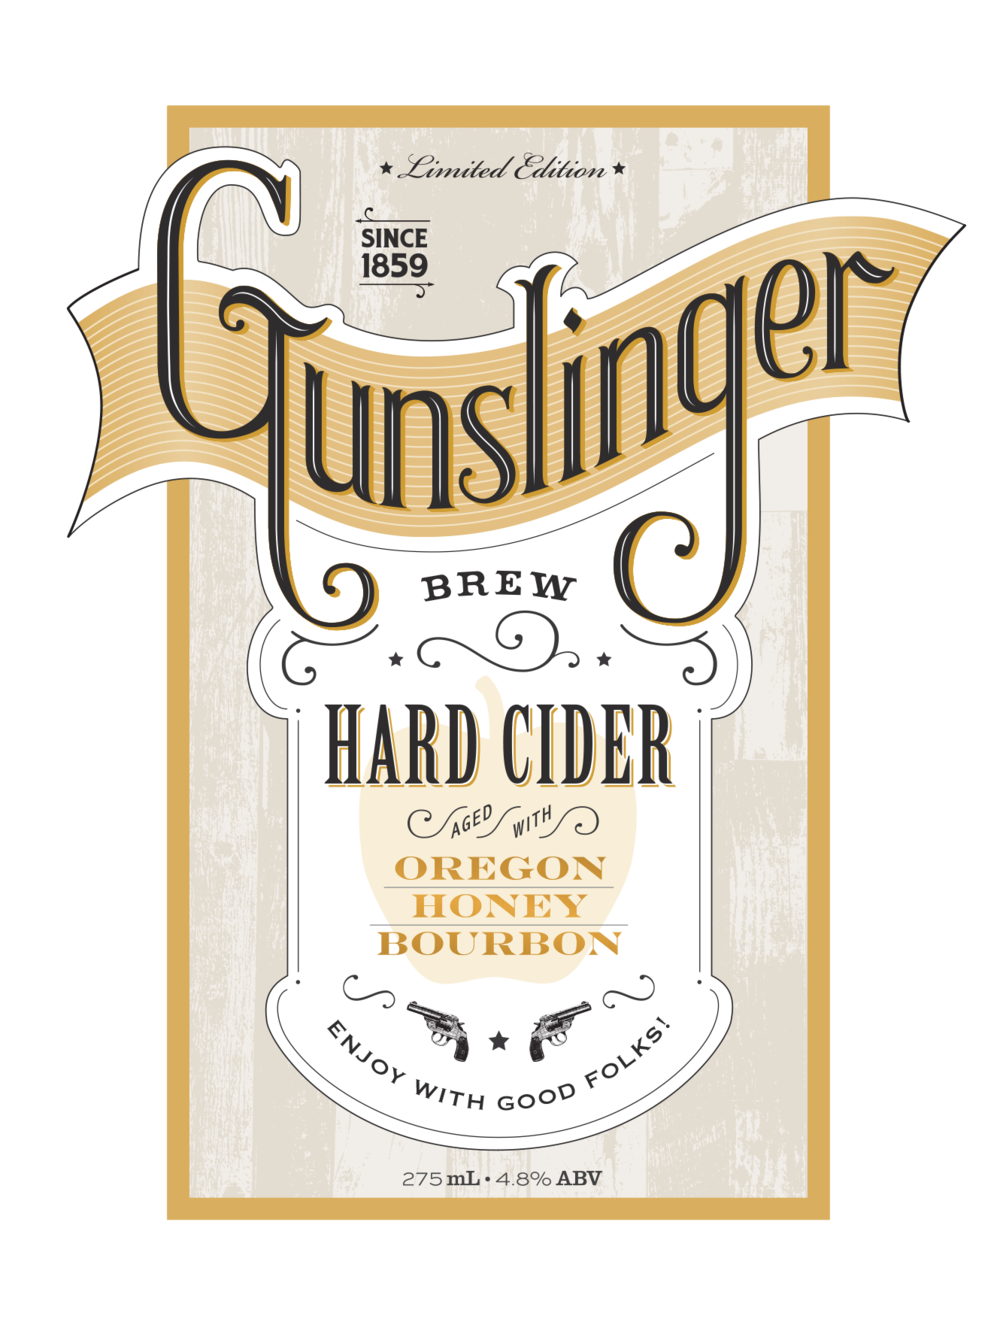 The Gunslinger Brew Label